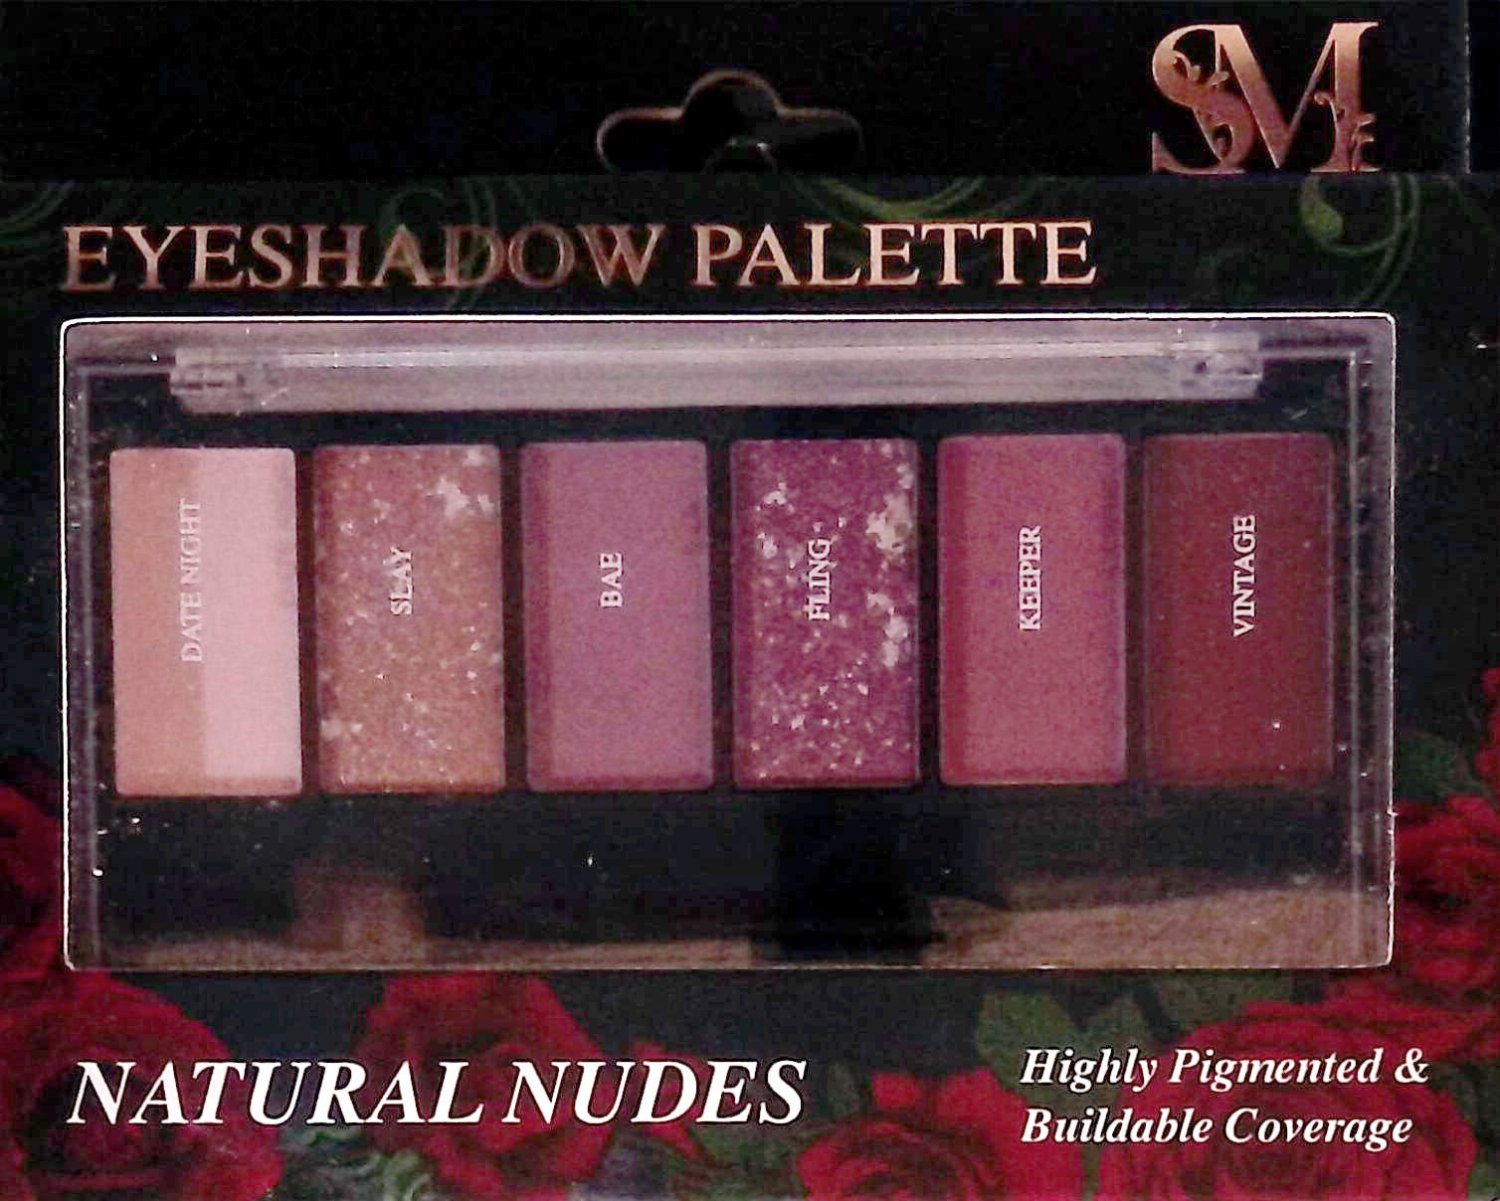 Smoke&Mirrors Eye shadow Palette - Natural Nudes, Highly Pigmented & Buildable Coverage